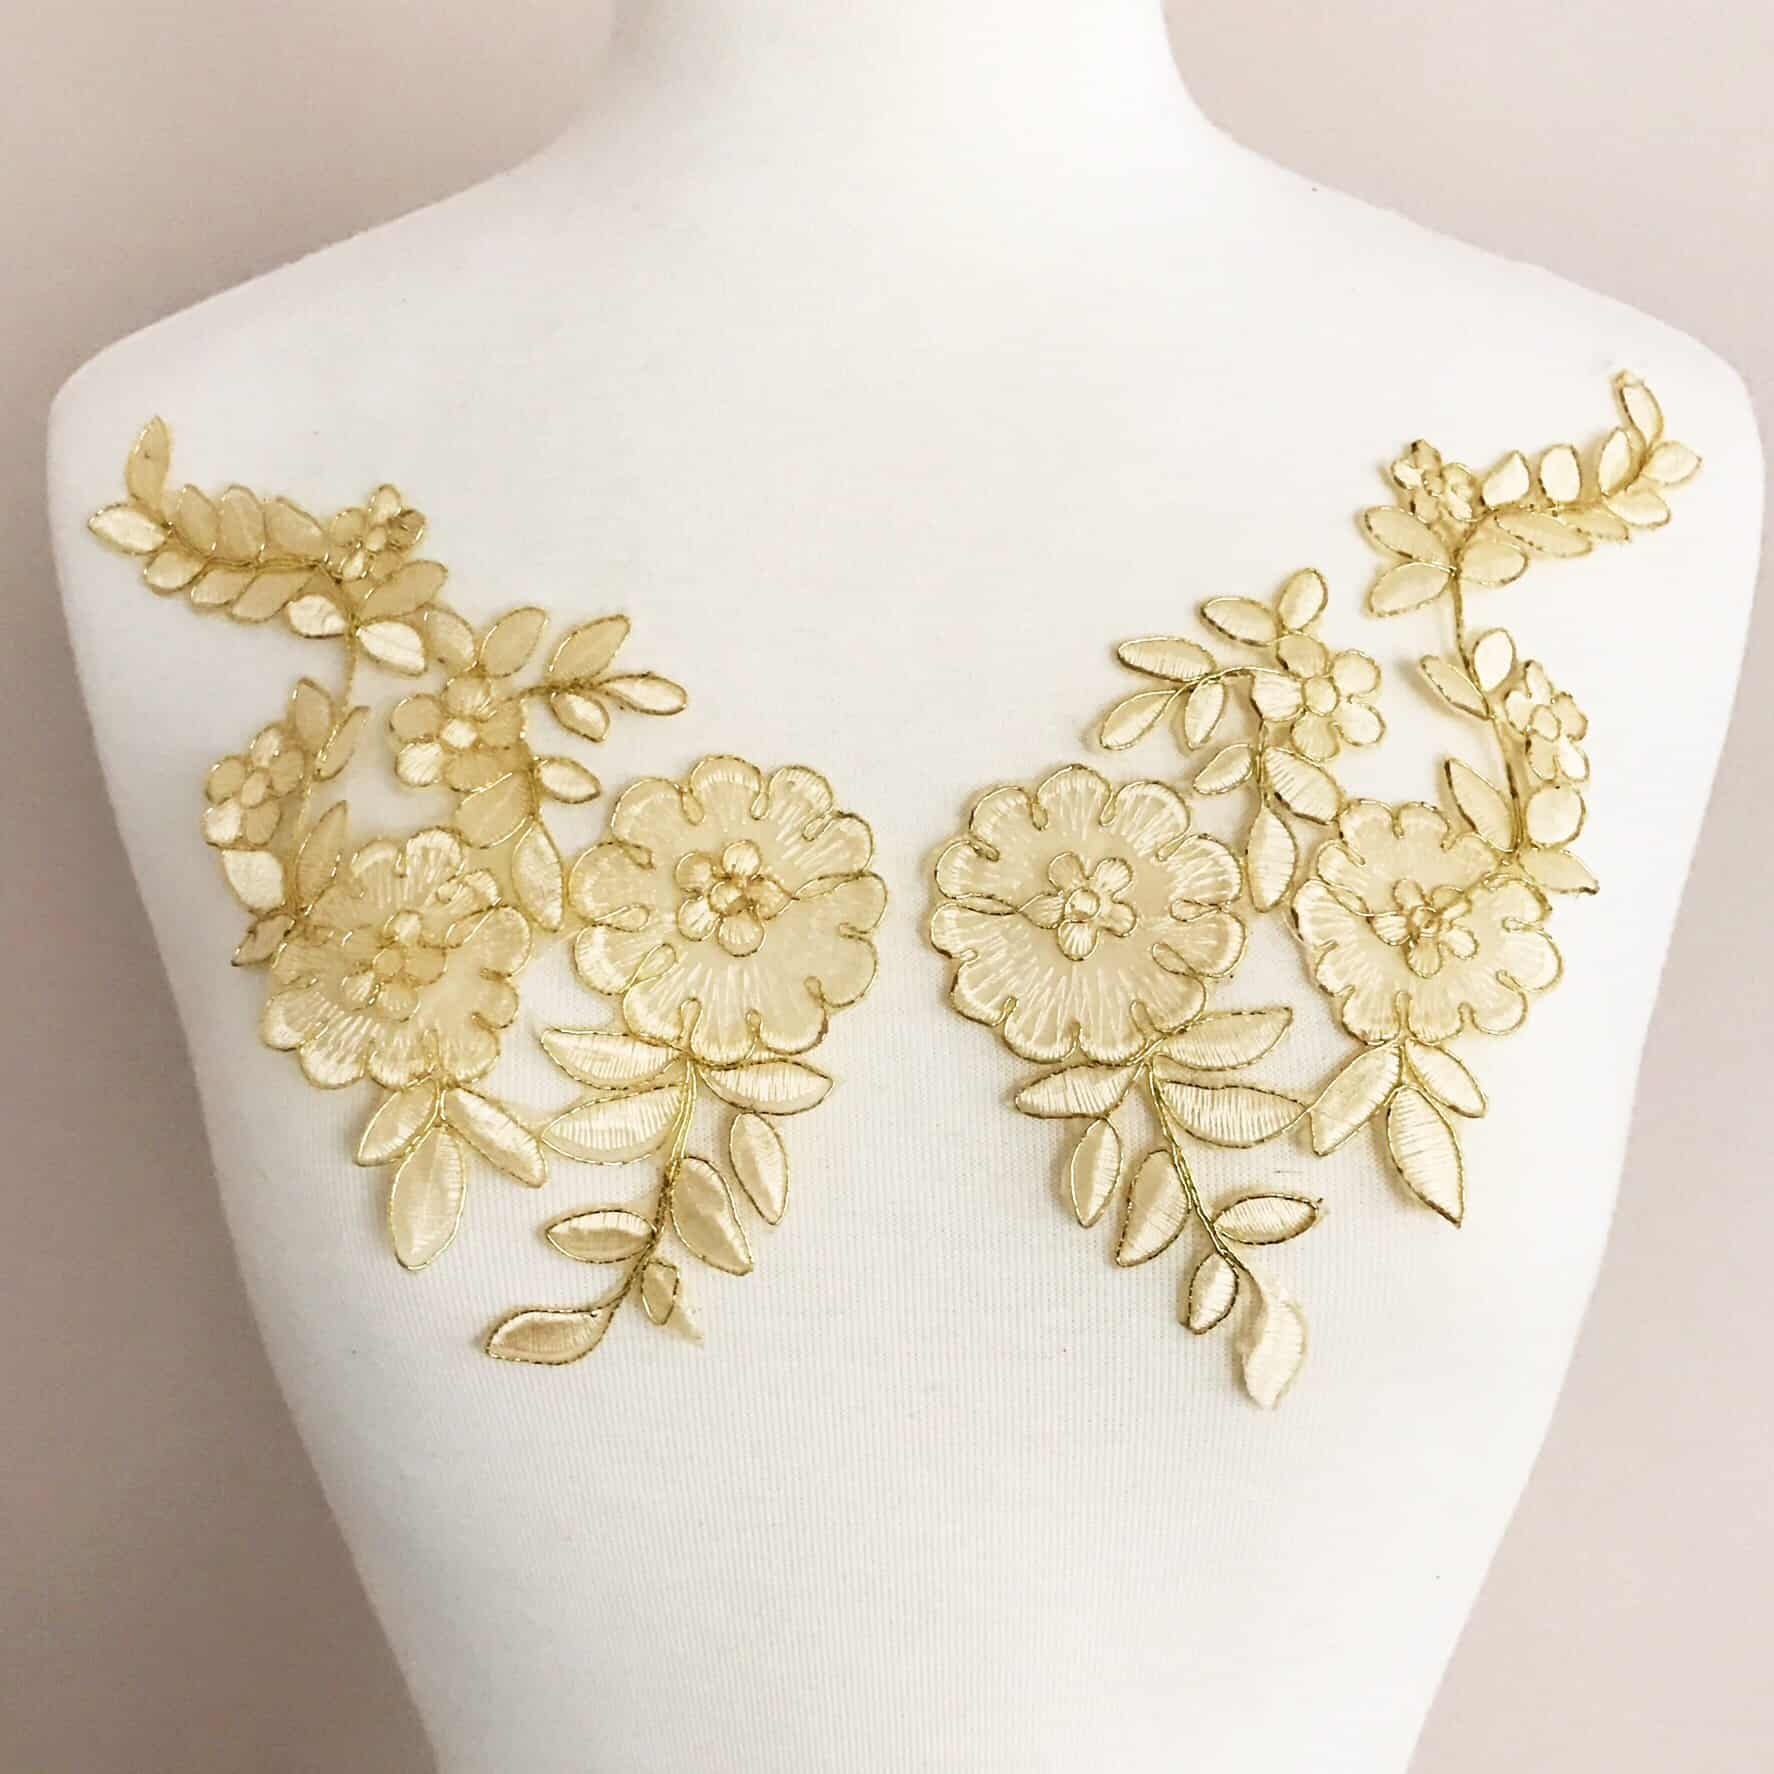 Matching Femina Floral Embroided Appliques (SOLD AS PAIR)